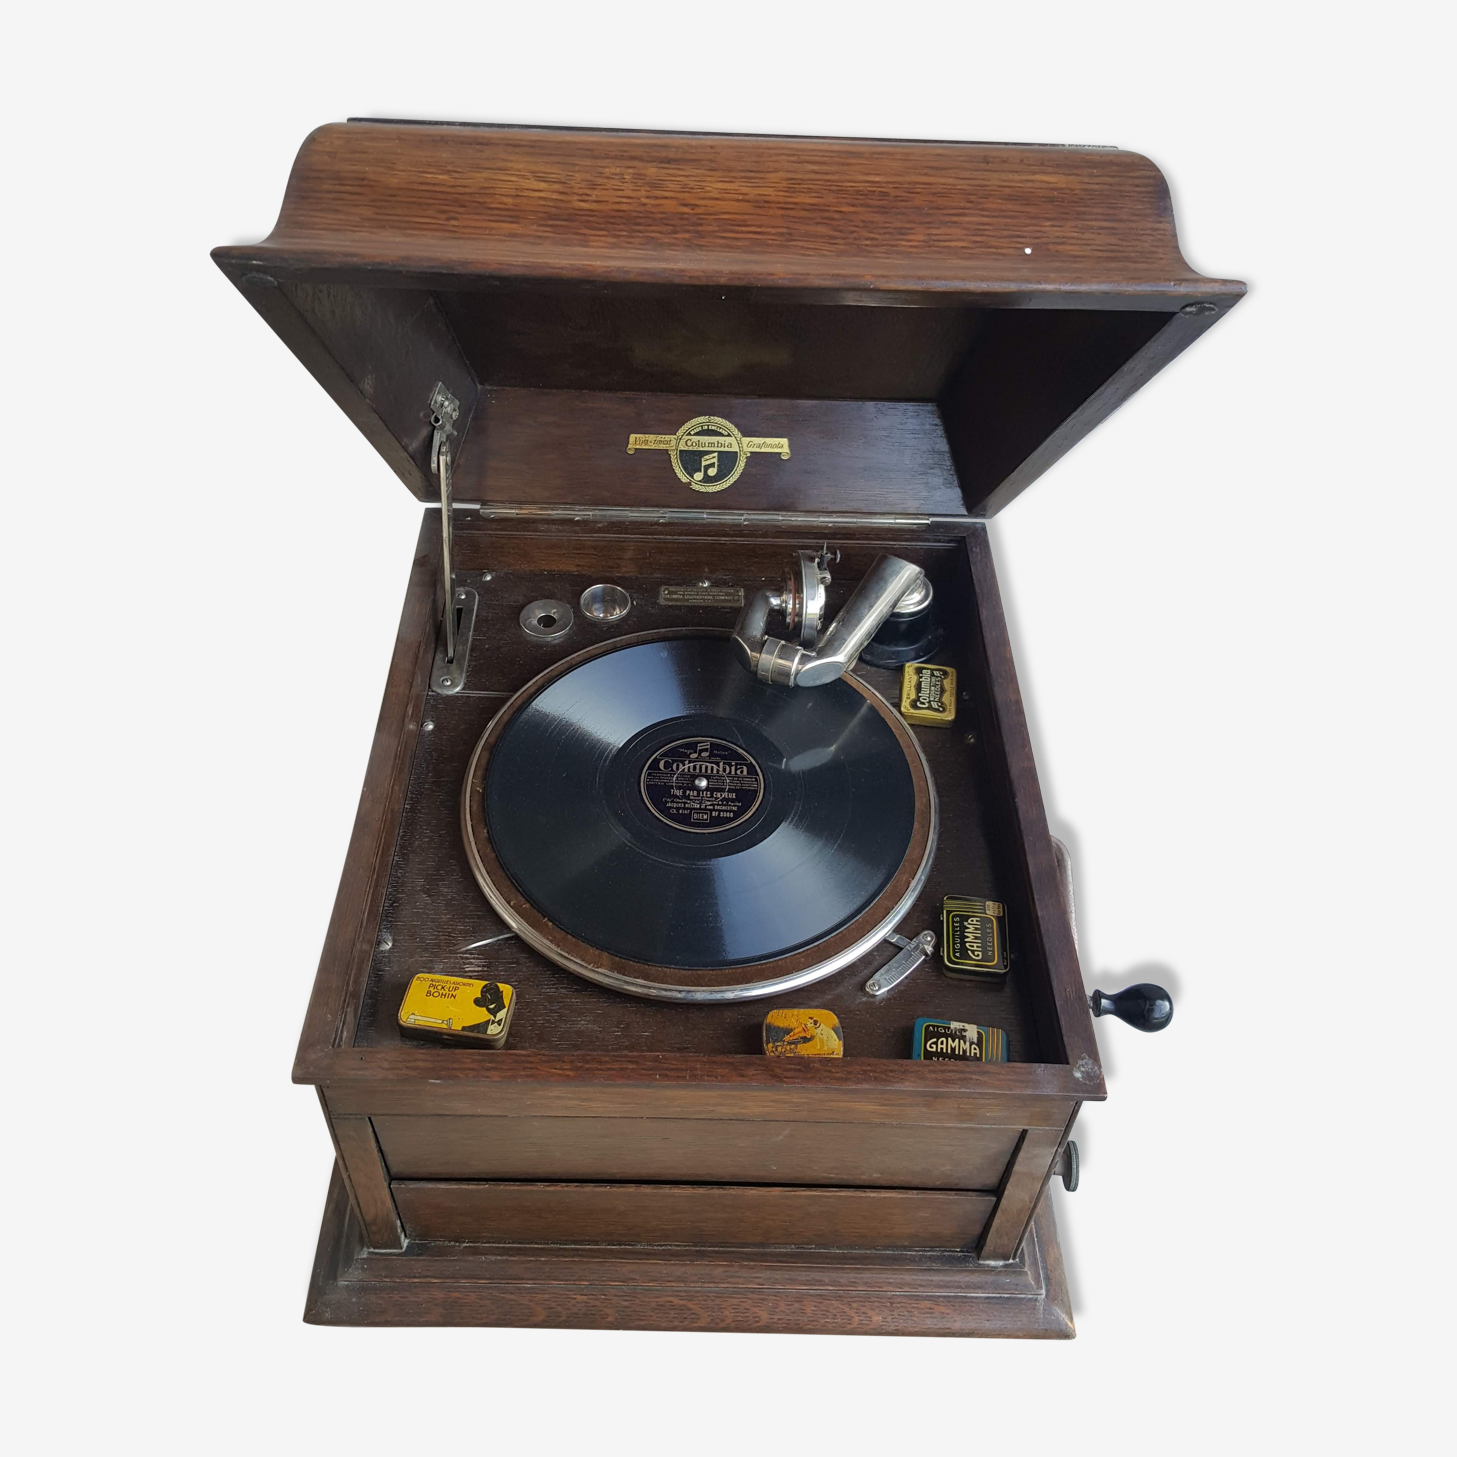 Gramophone Colombia of the 1930s